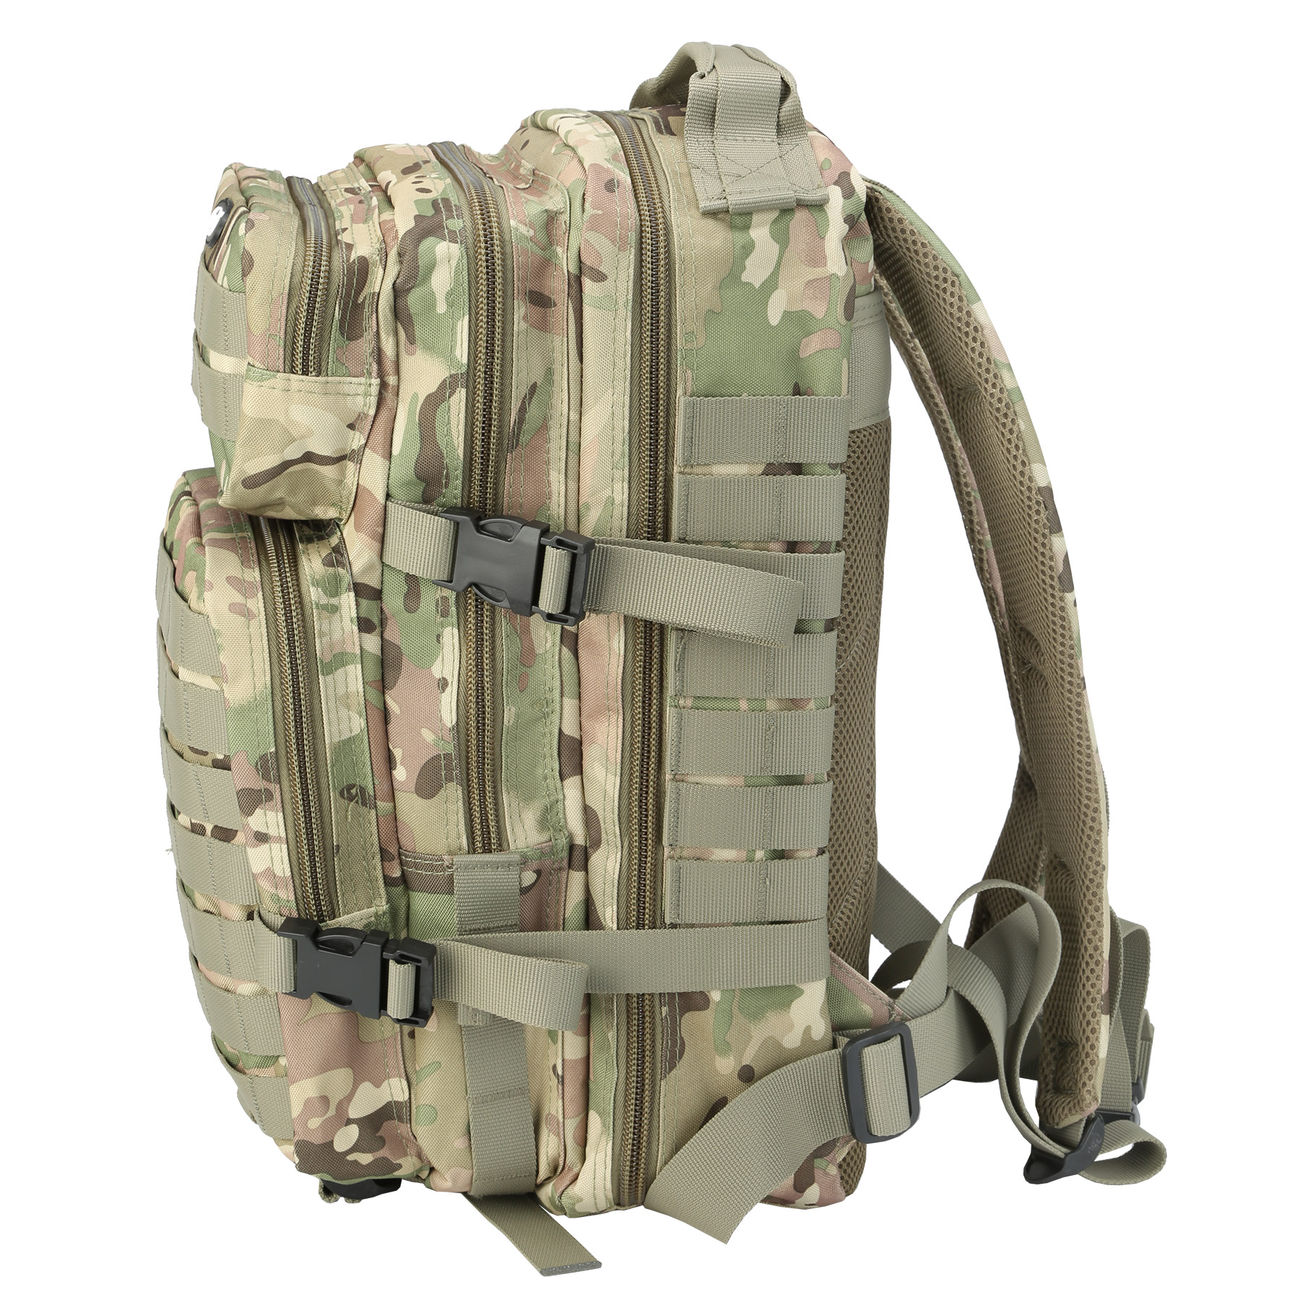 MFH Rucksack Assault I operation camo 2